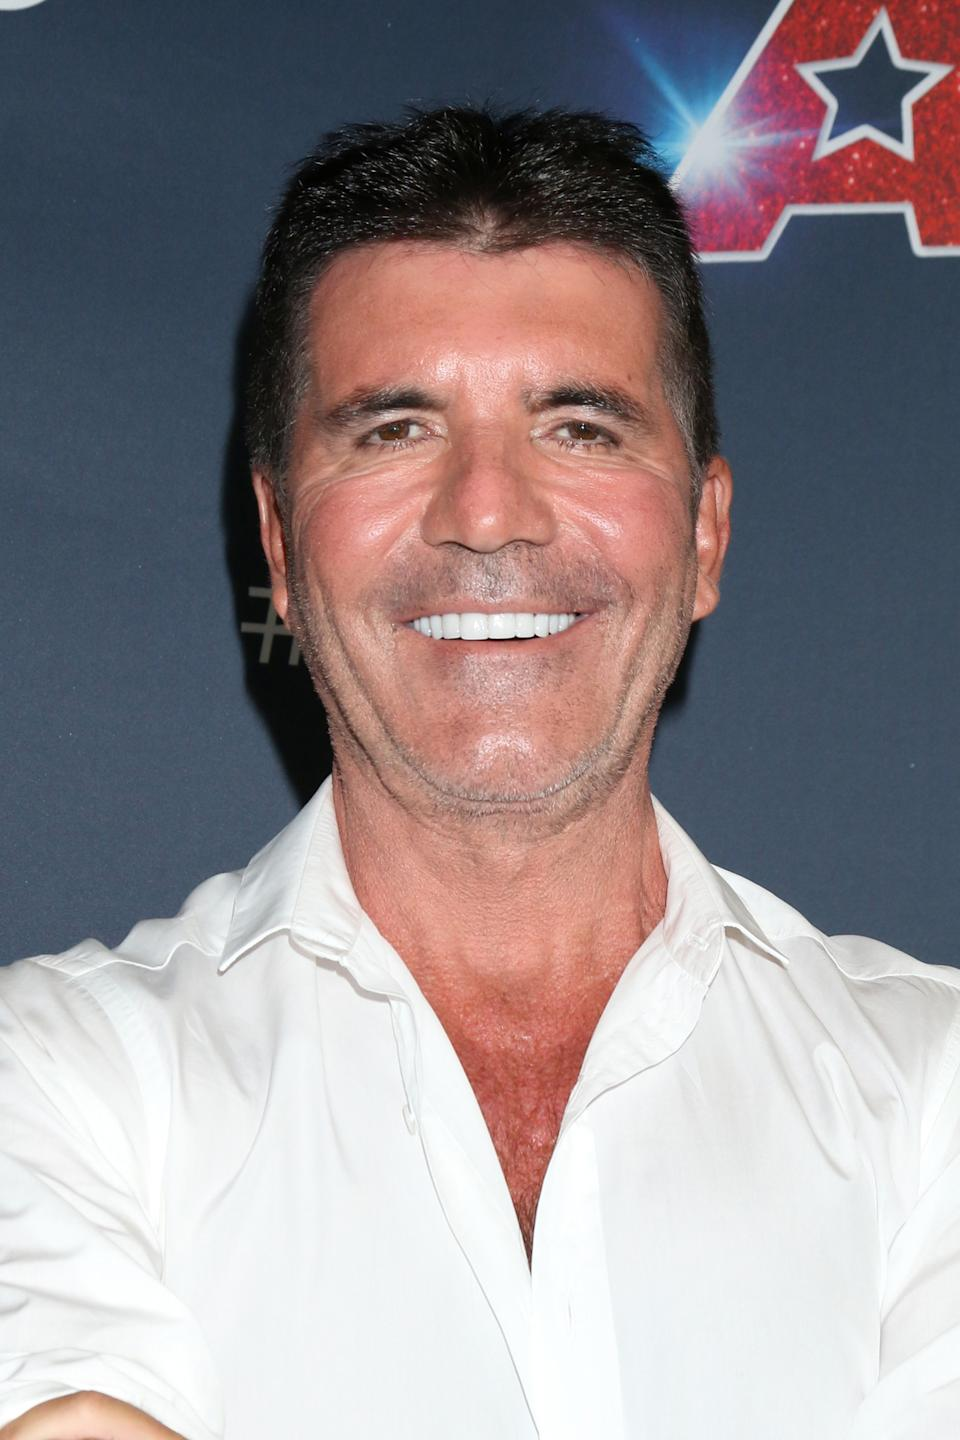 LOS ANGELES - SEP 18: Simon Cowell at the